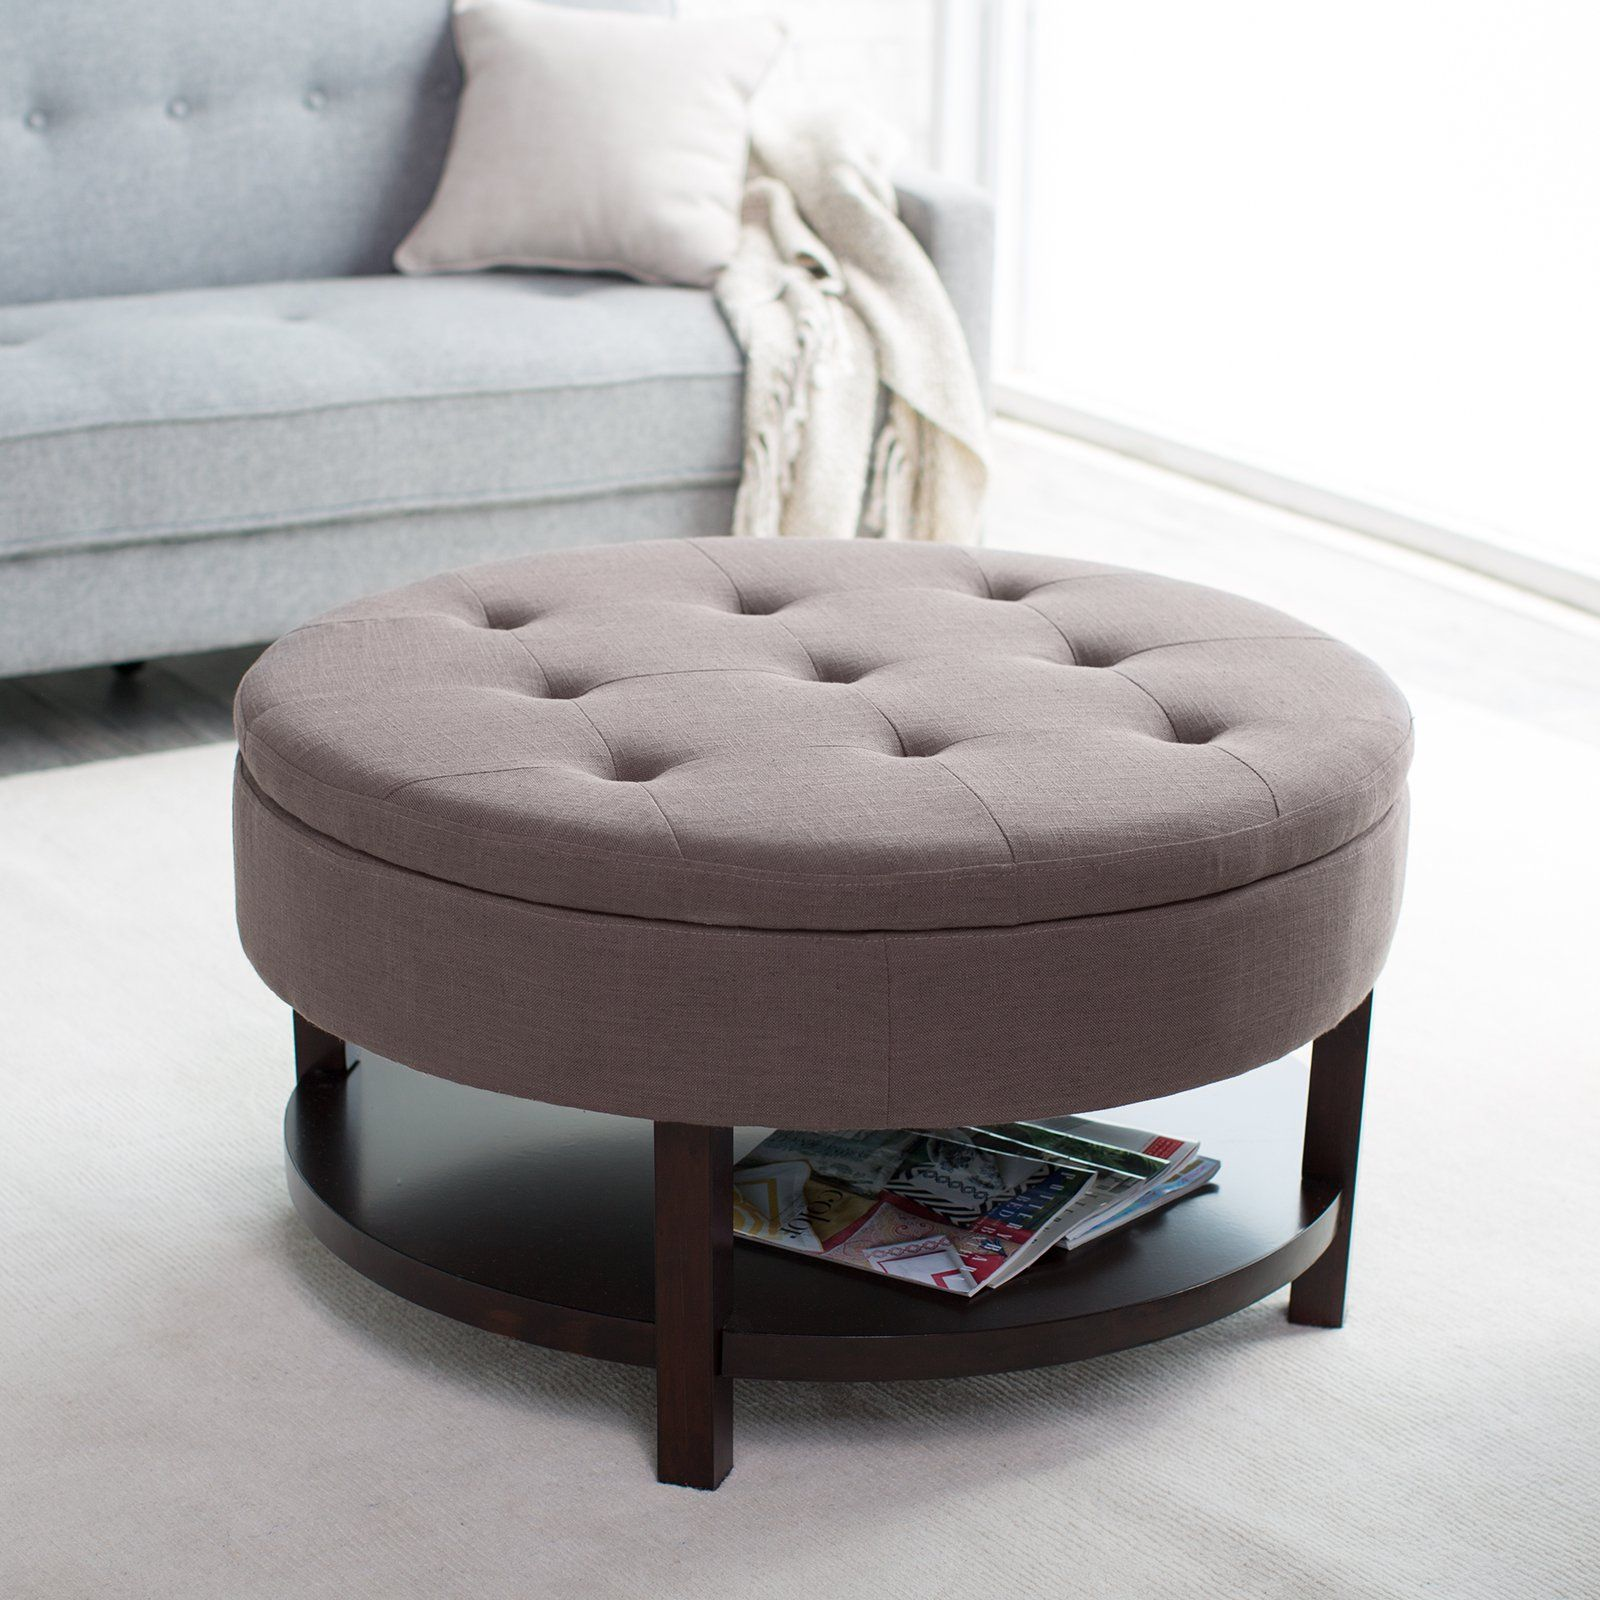 Belham Living Coffee Table Storage Ottoman with ShelfChocolate